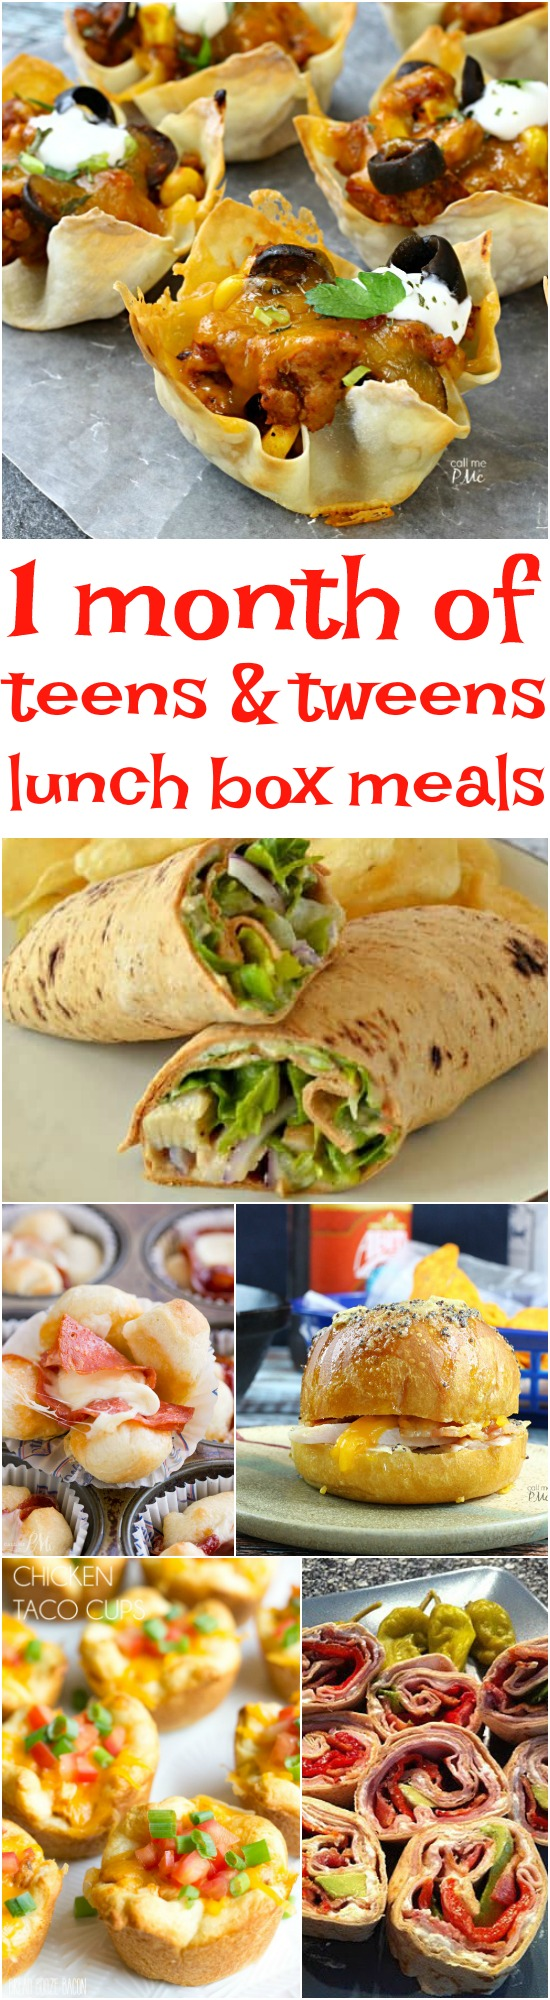 1 Month of Lunchbox Ideas for Tweens and Teens -try to remember when packing their lunches that meals high in fiber and protein will keep them full longer.